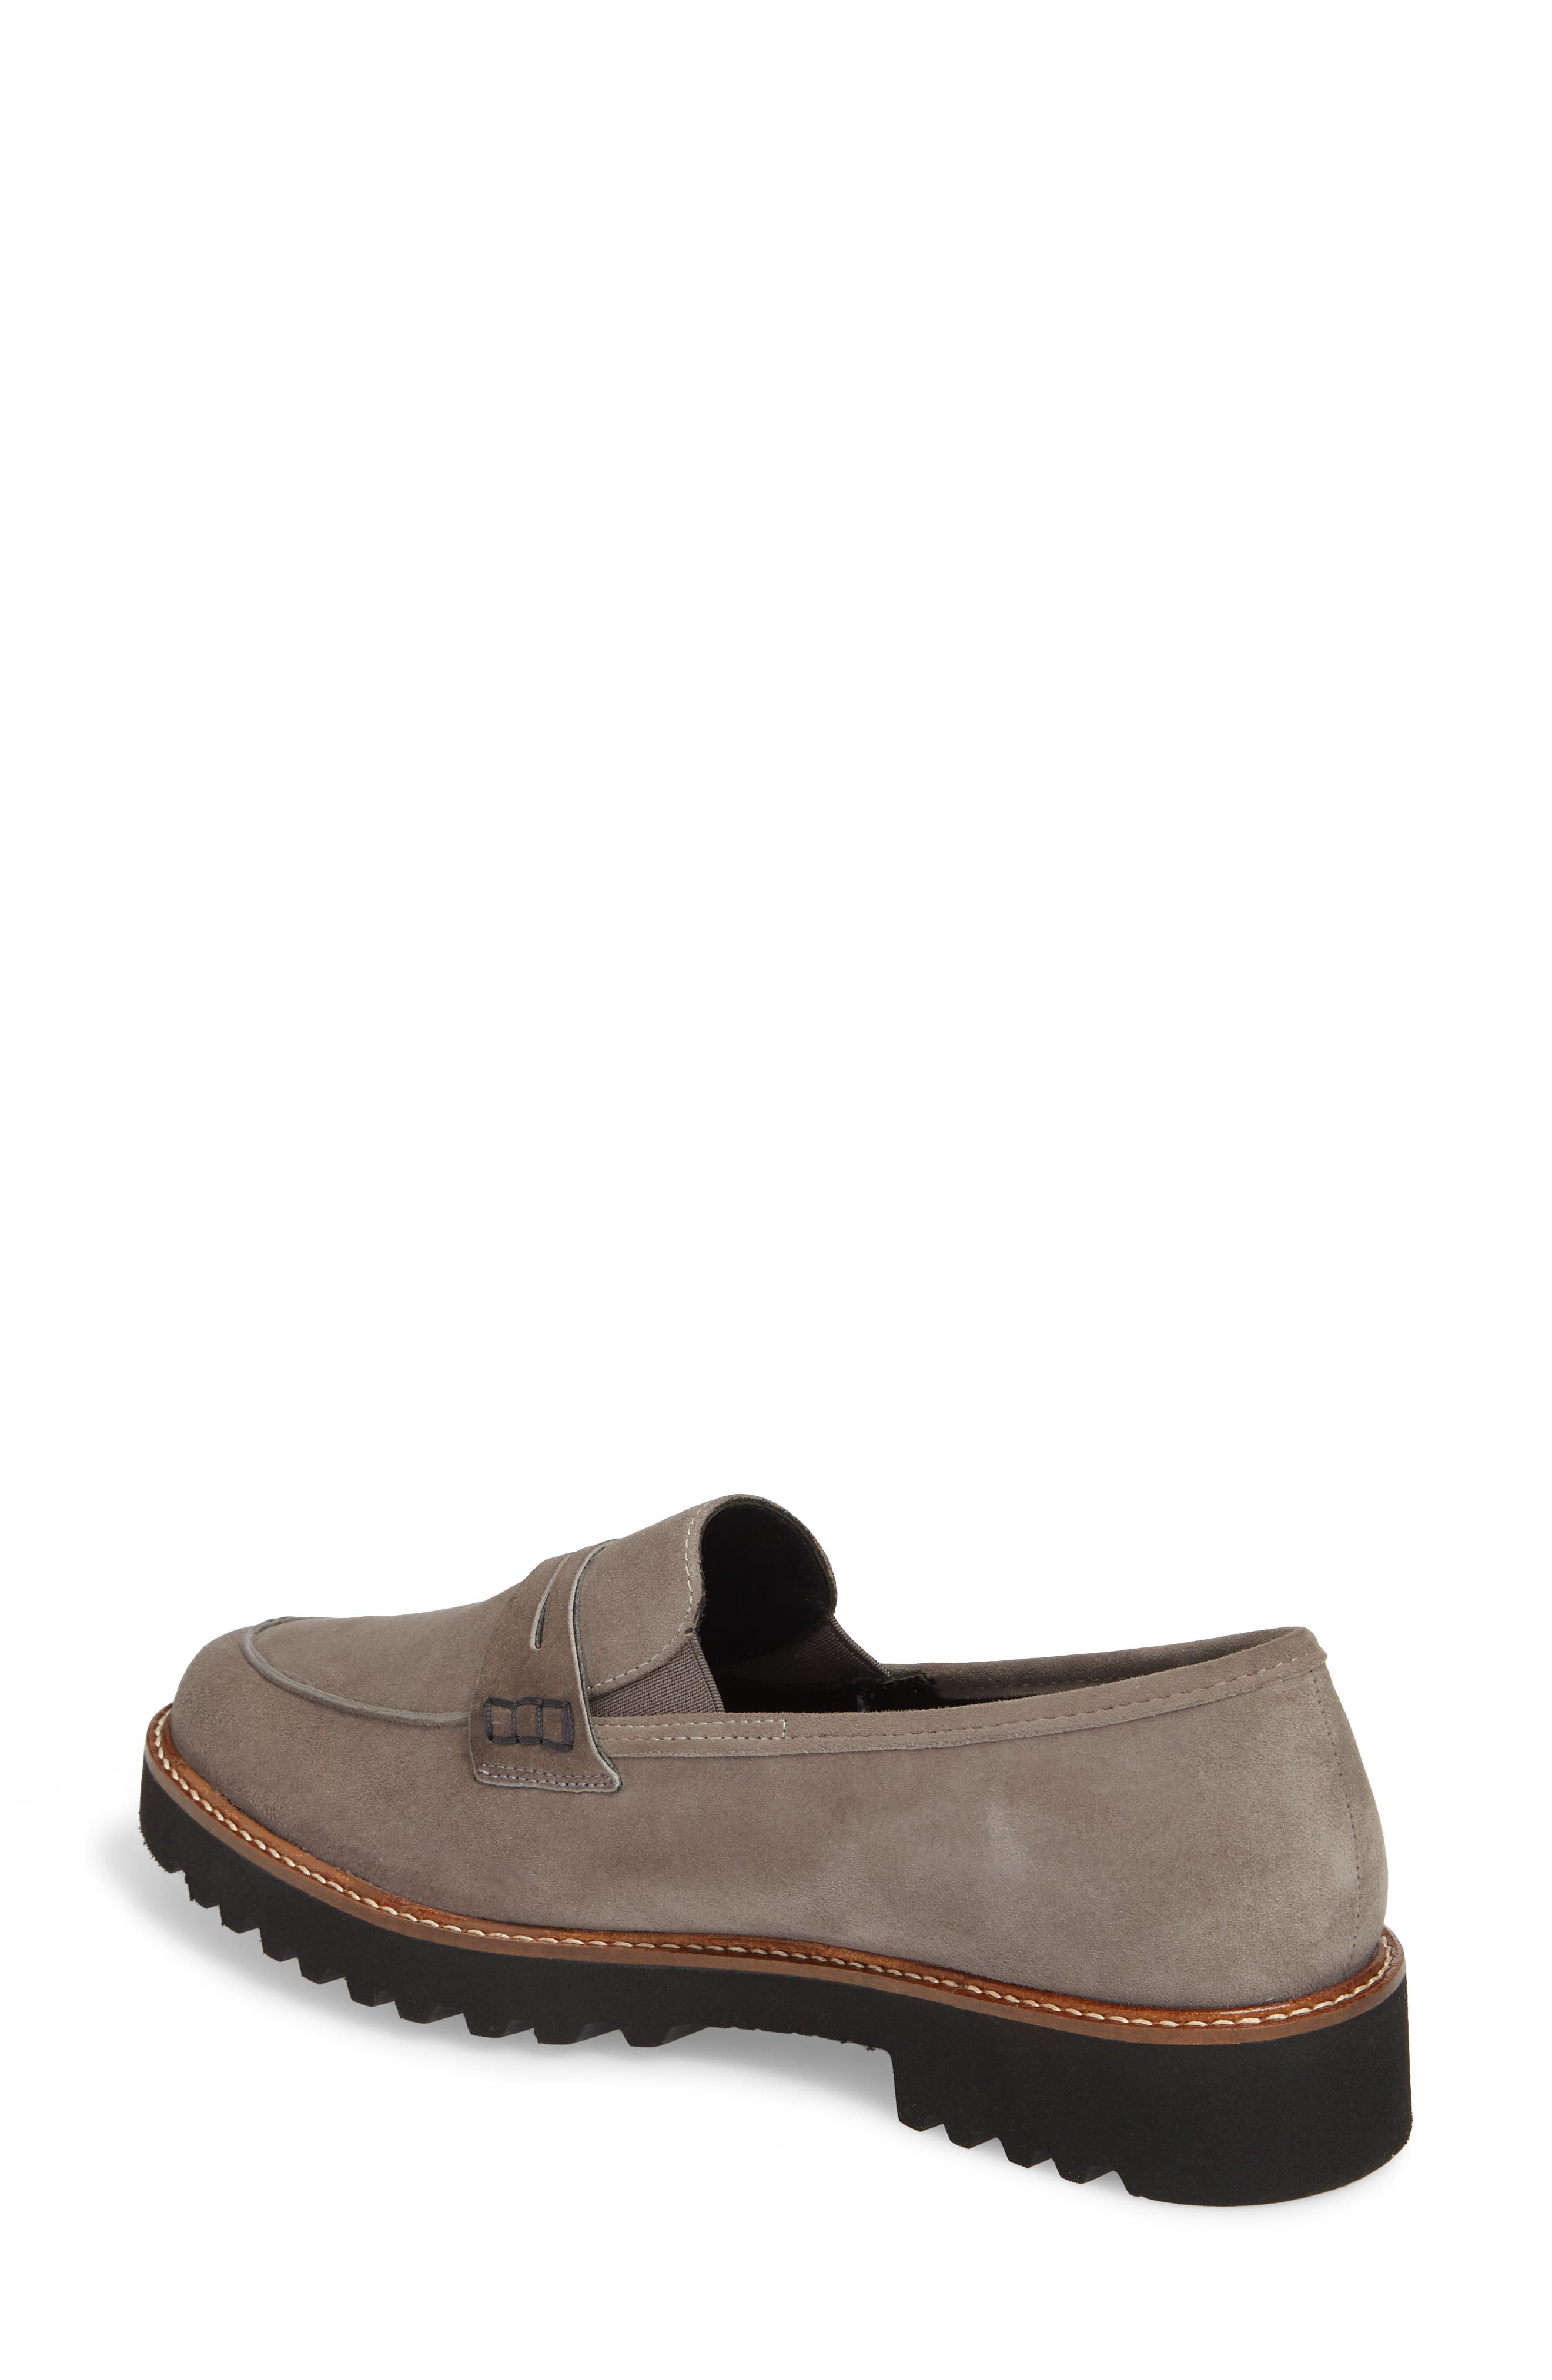 Sidney Penny Loafer,                             Alternate thumbnail 2, color,                             Grey Suede